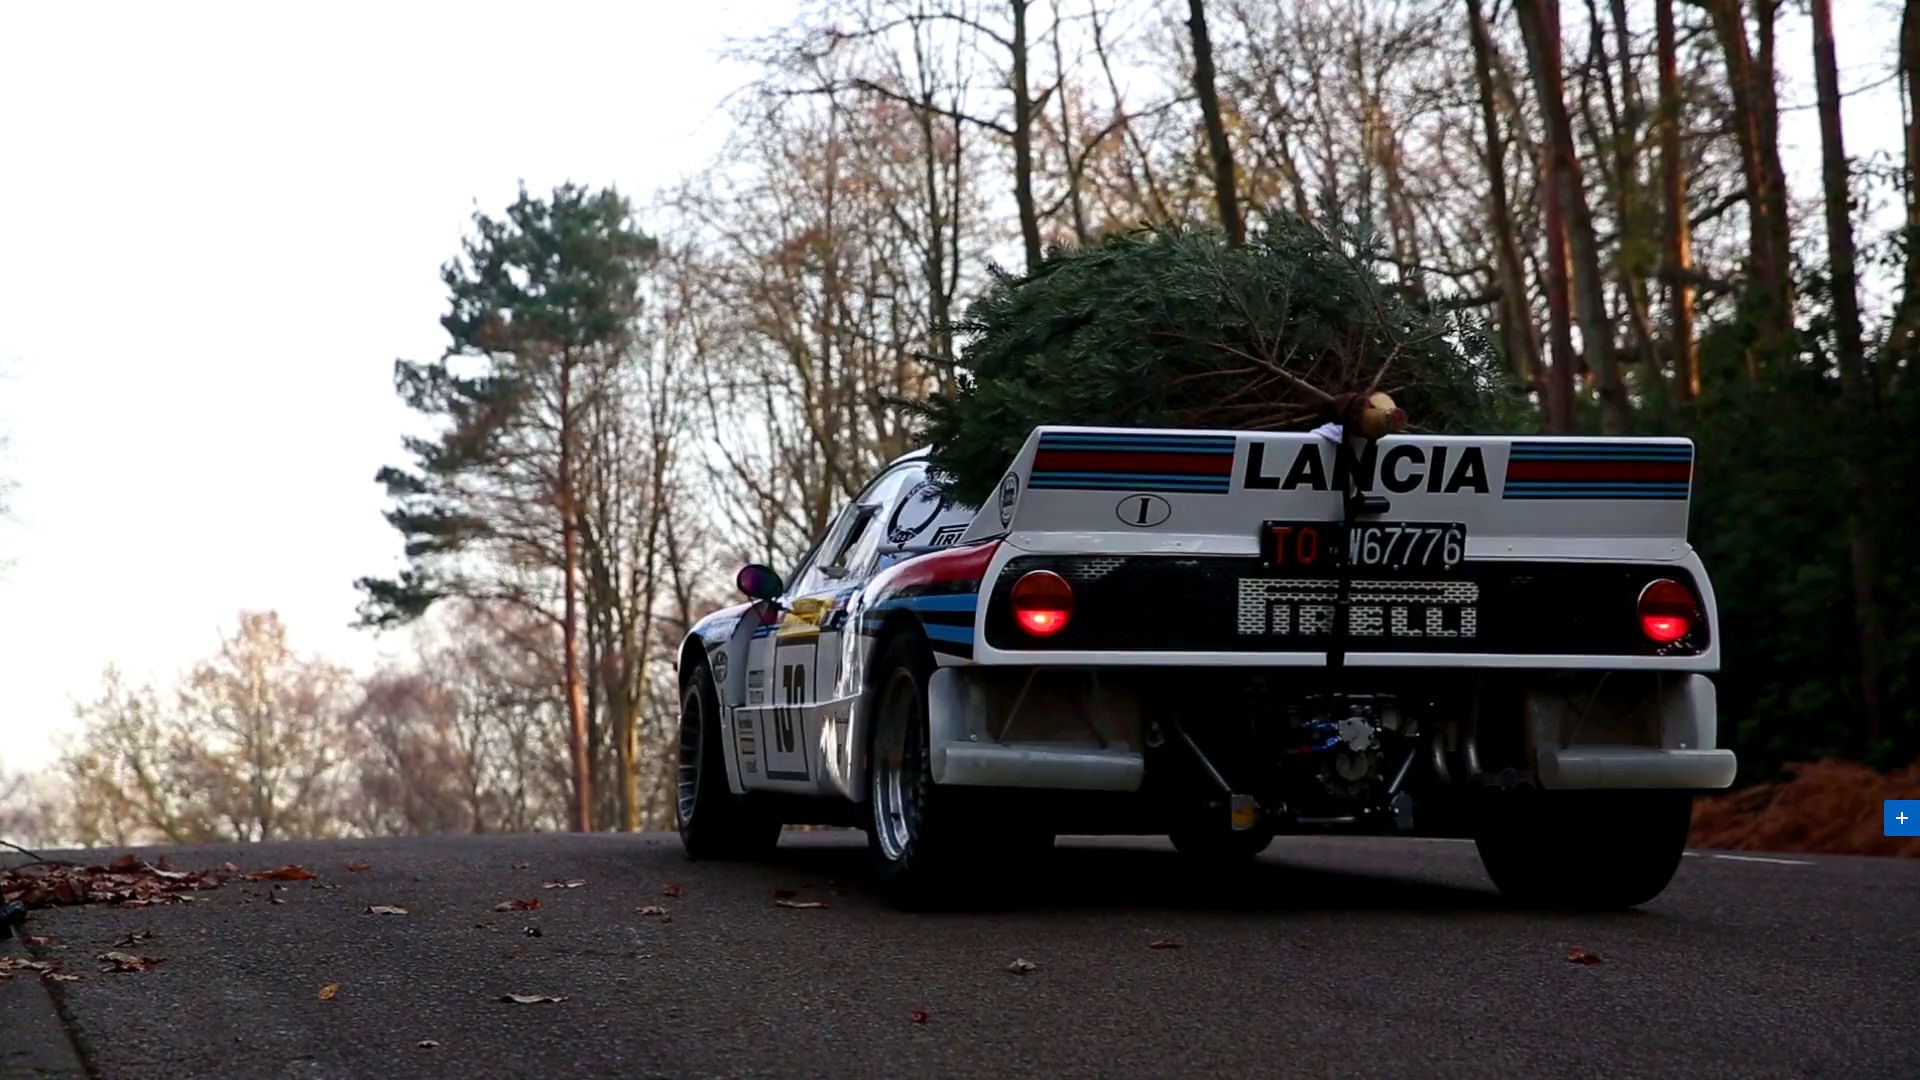 Lancia Group B rally car pressed into holiday service